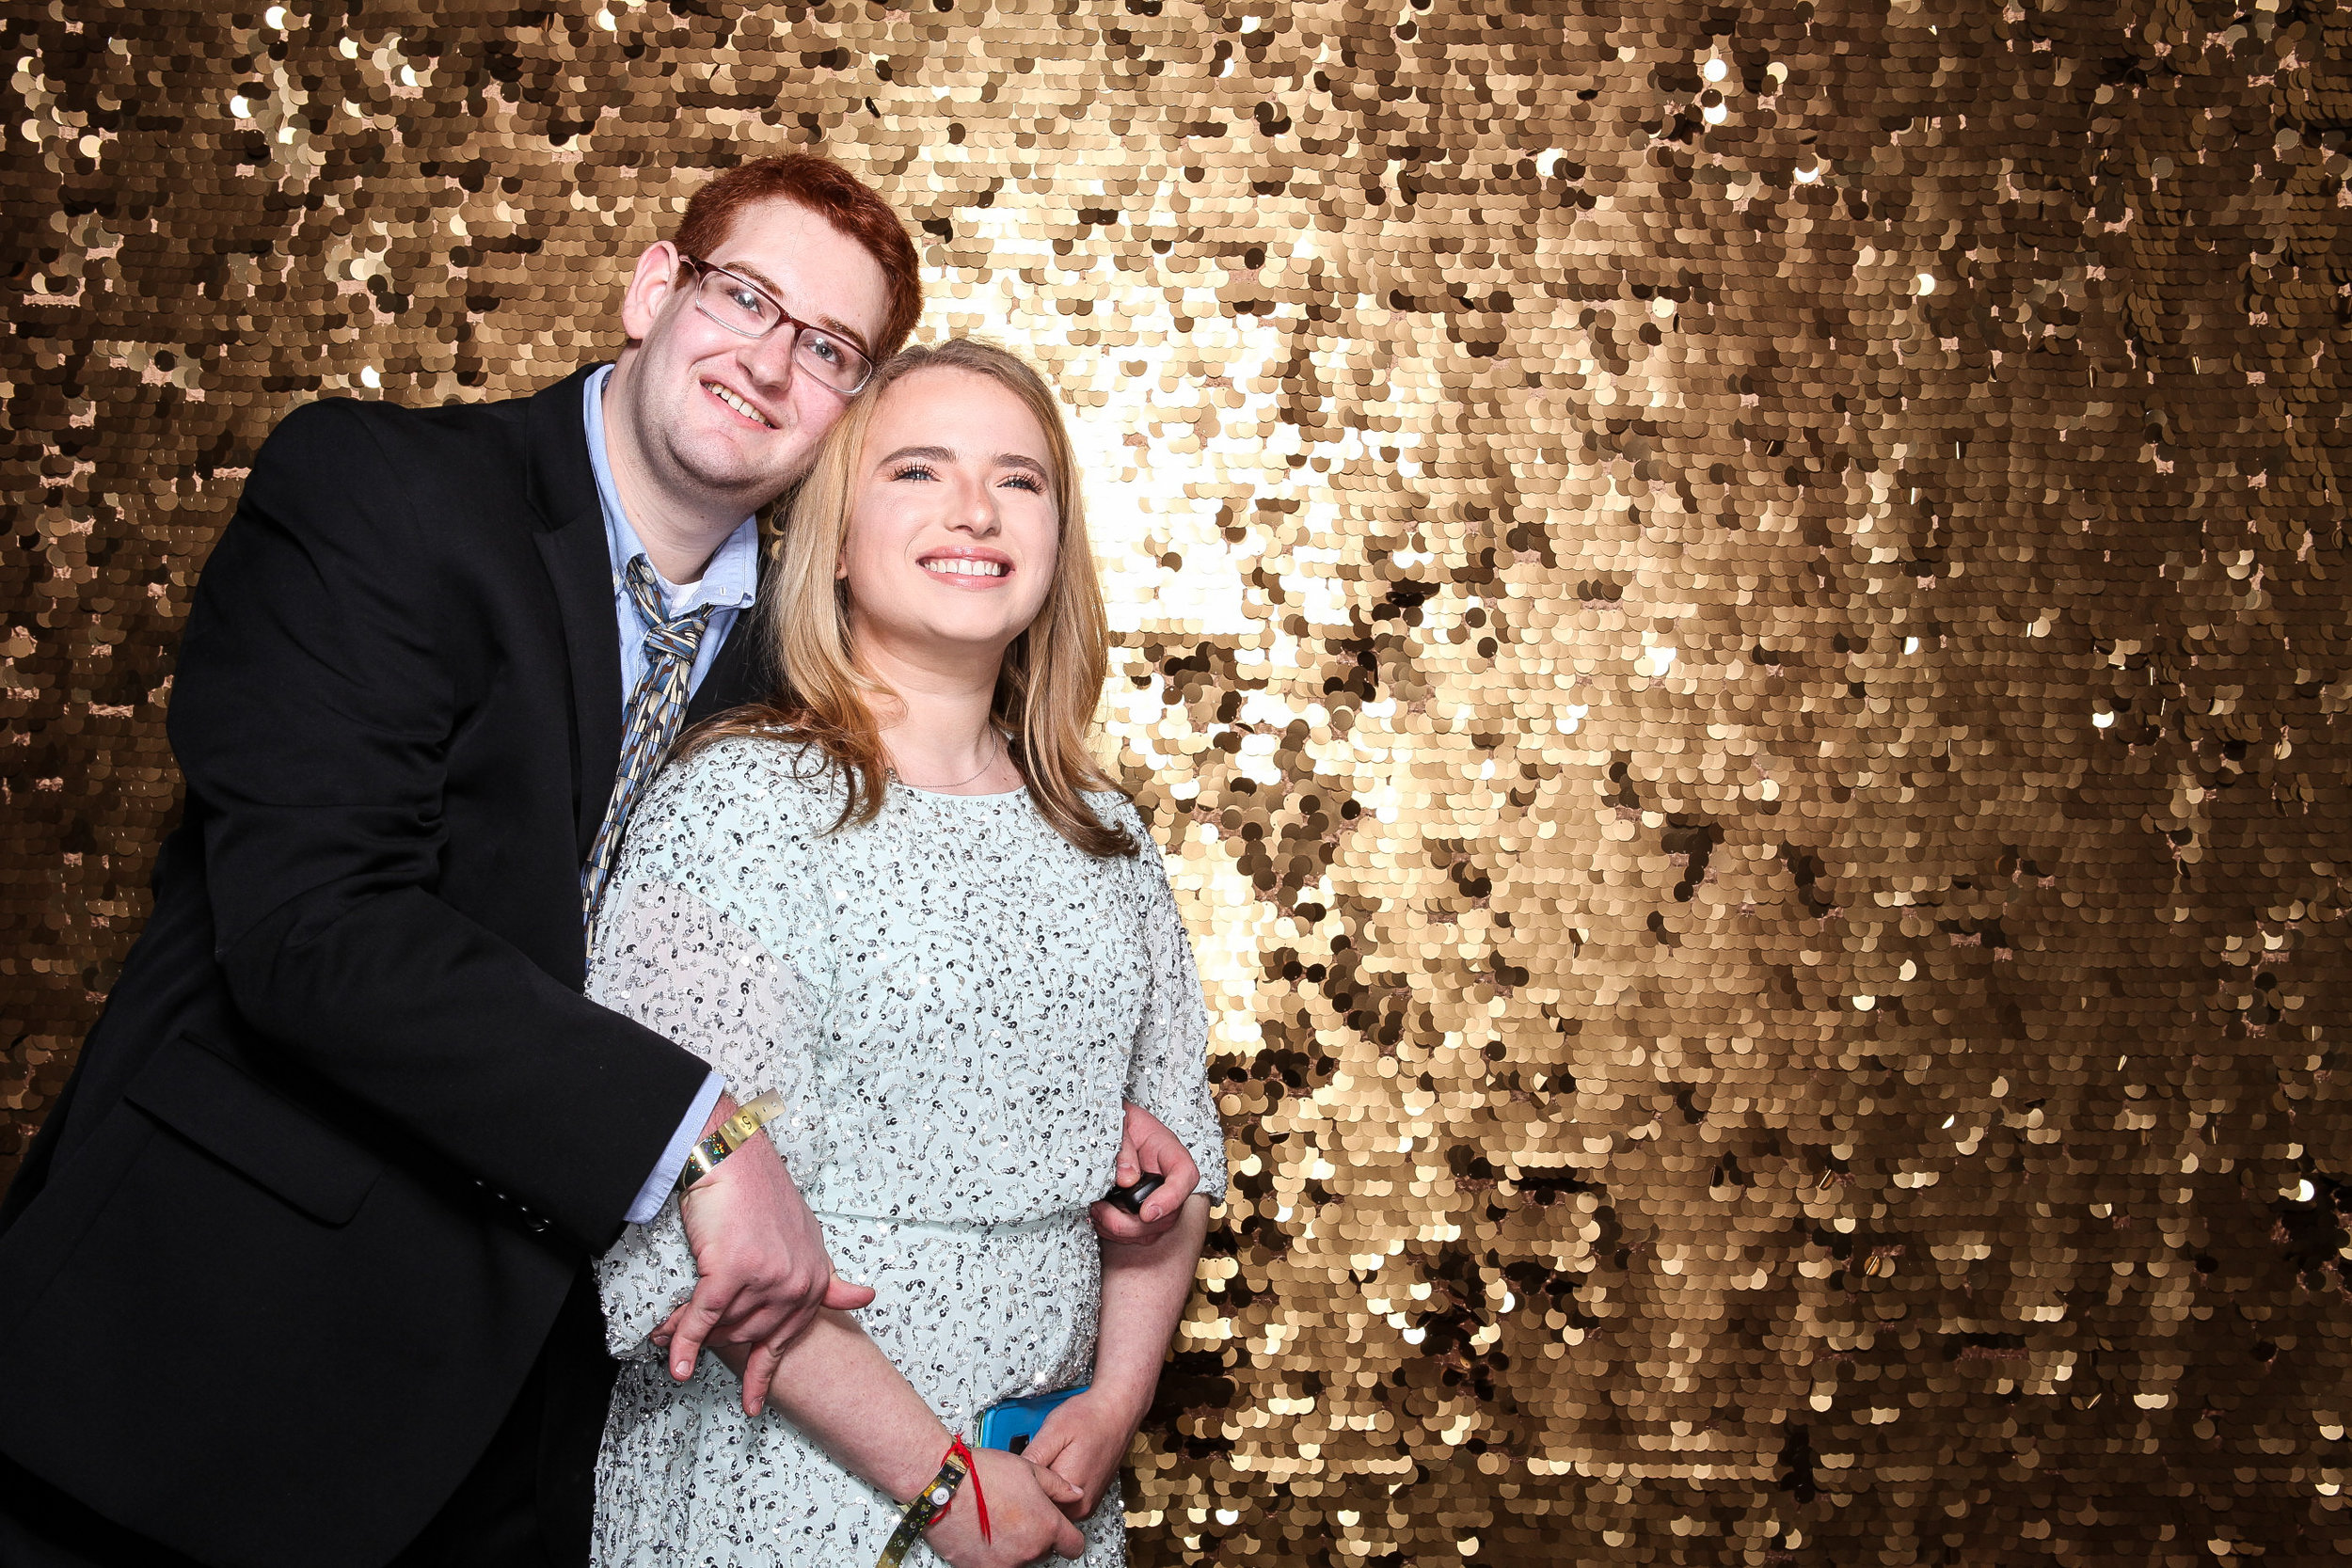 20190503_Adelphi_Senior_Formal-159.jpg